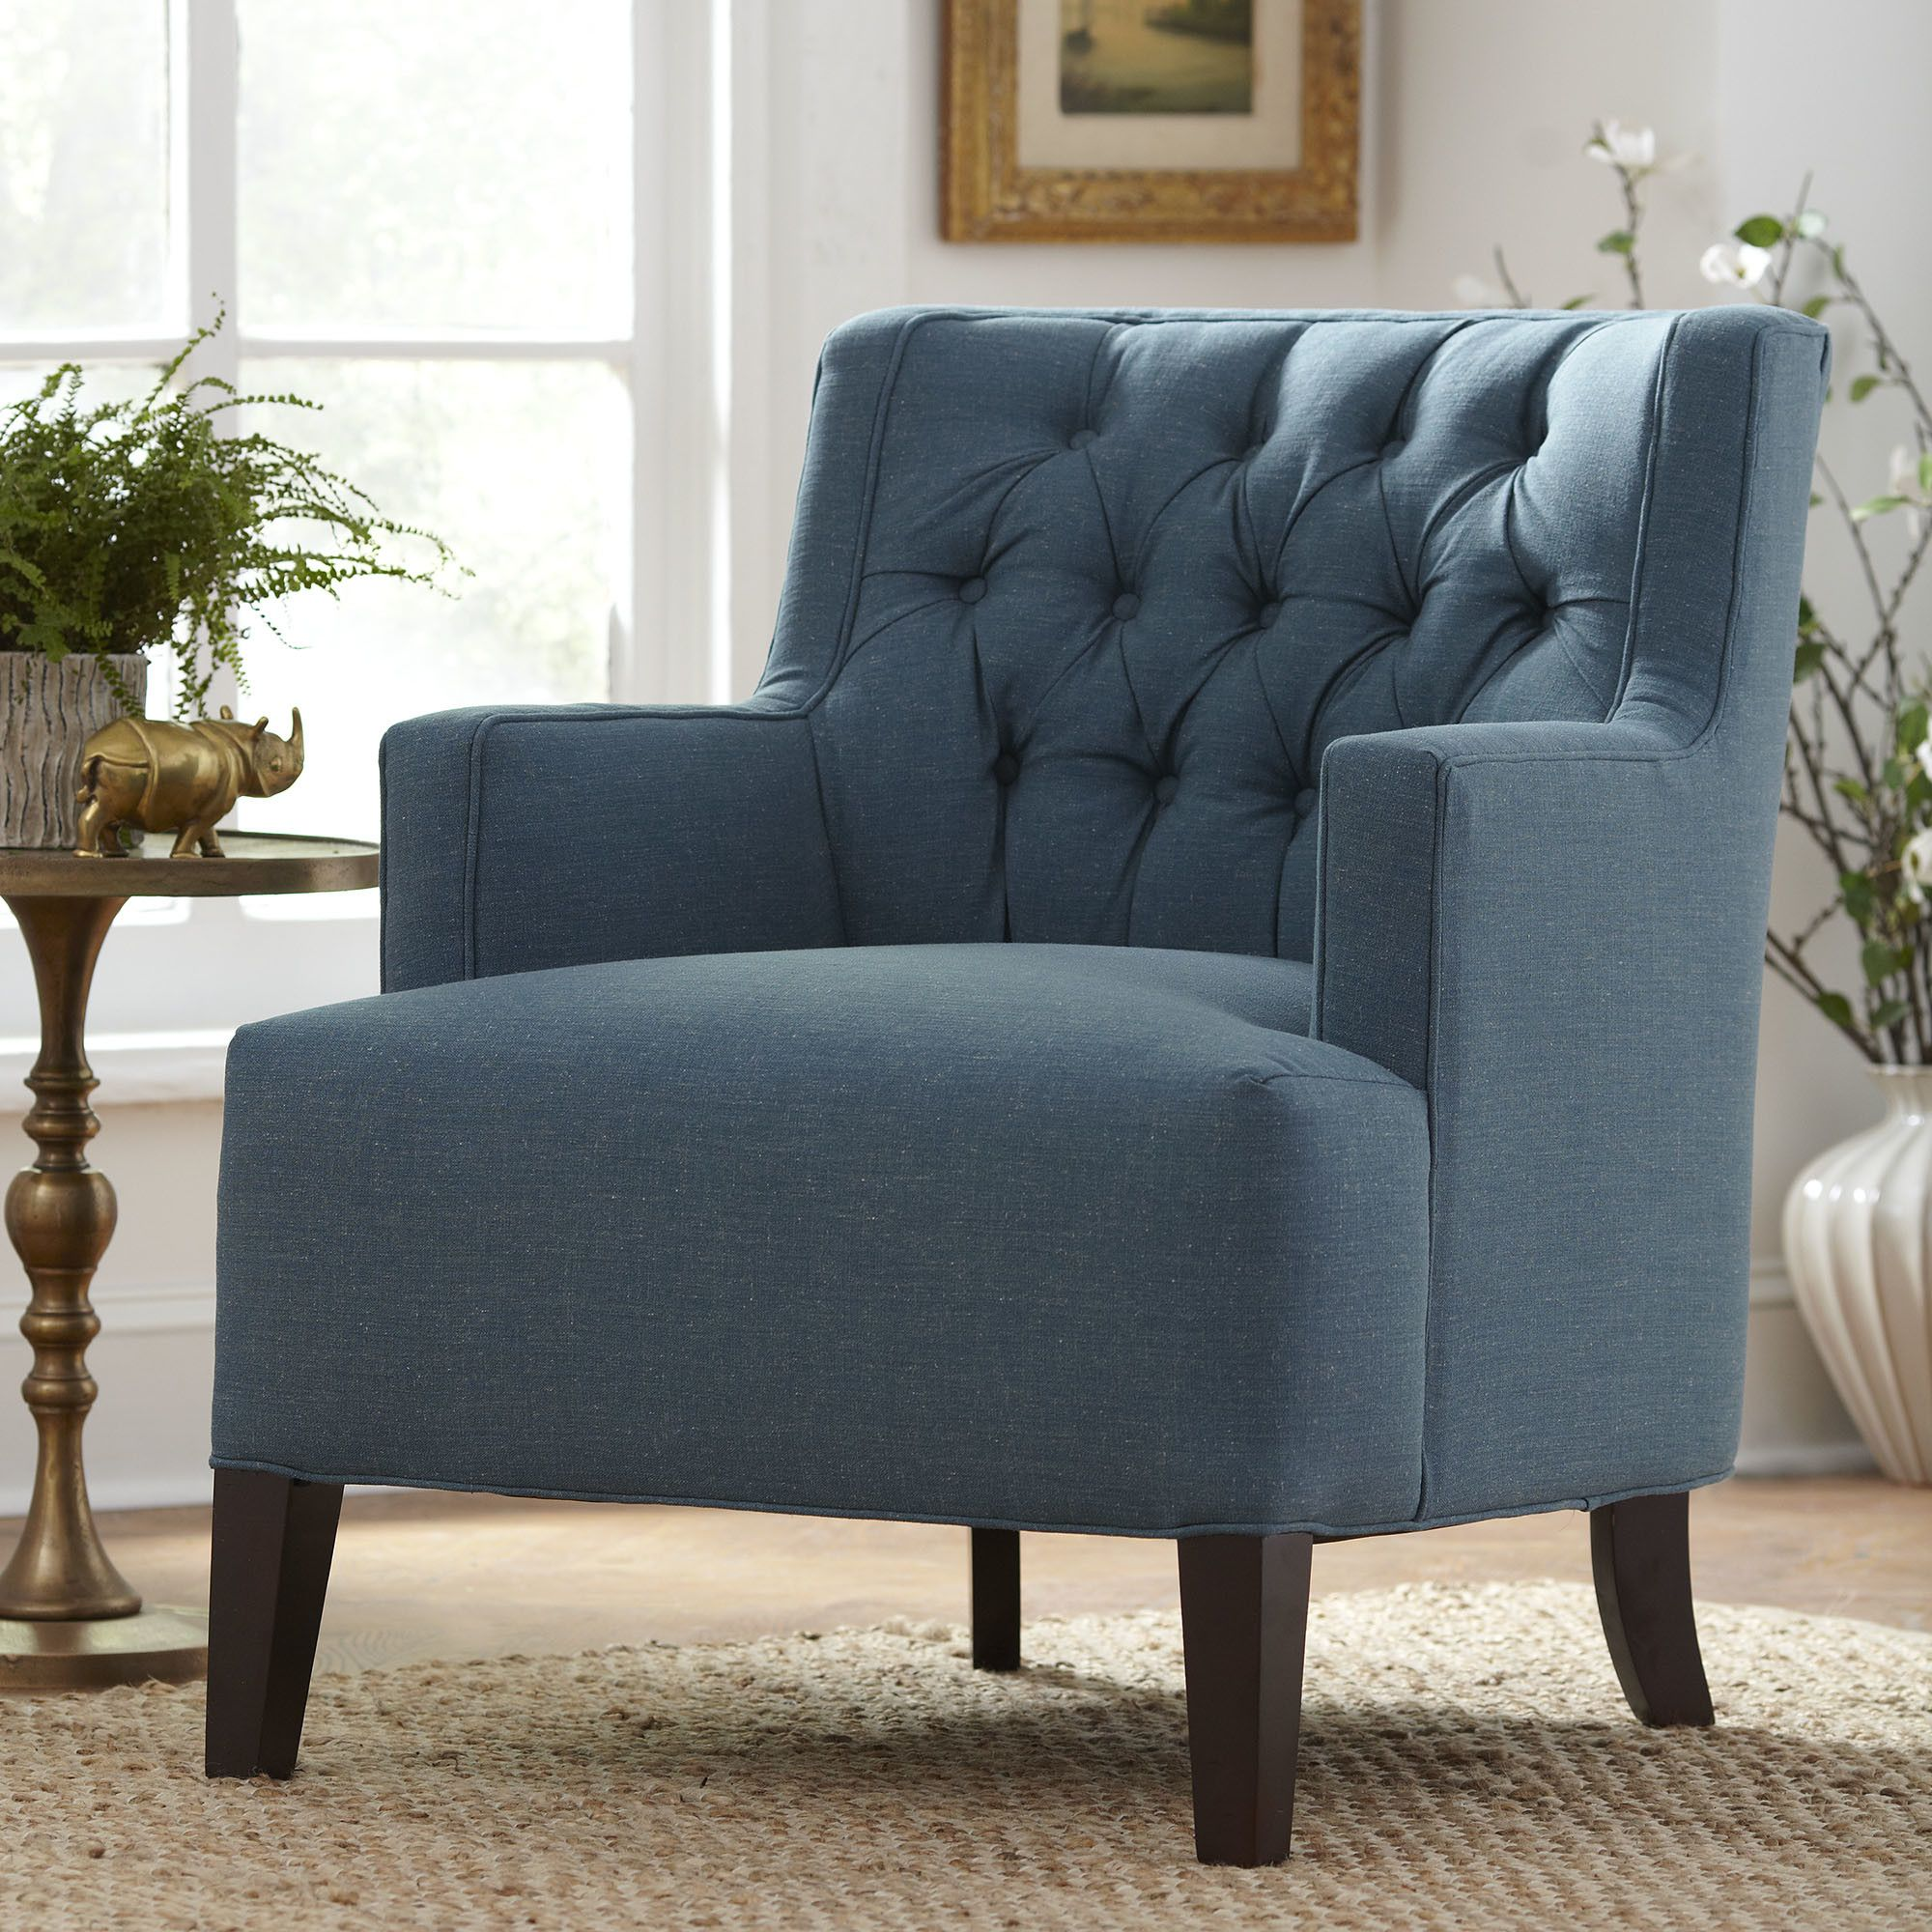 Howerton Arm Chair  Accent chairs, Wayfair living room chairs